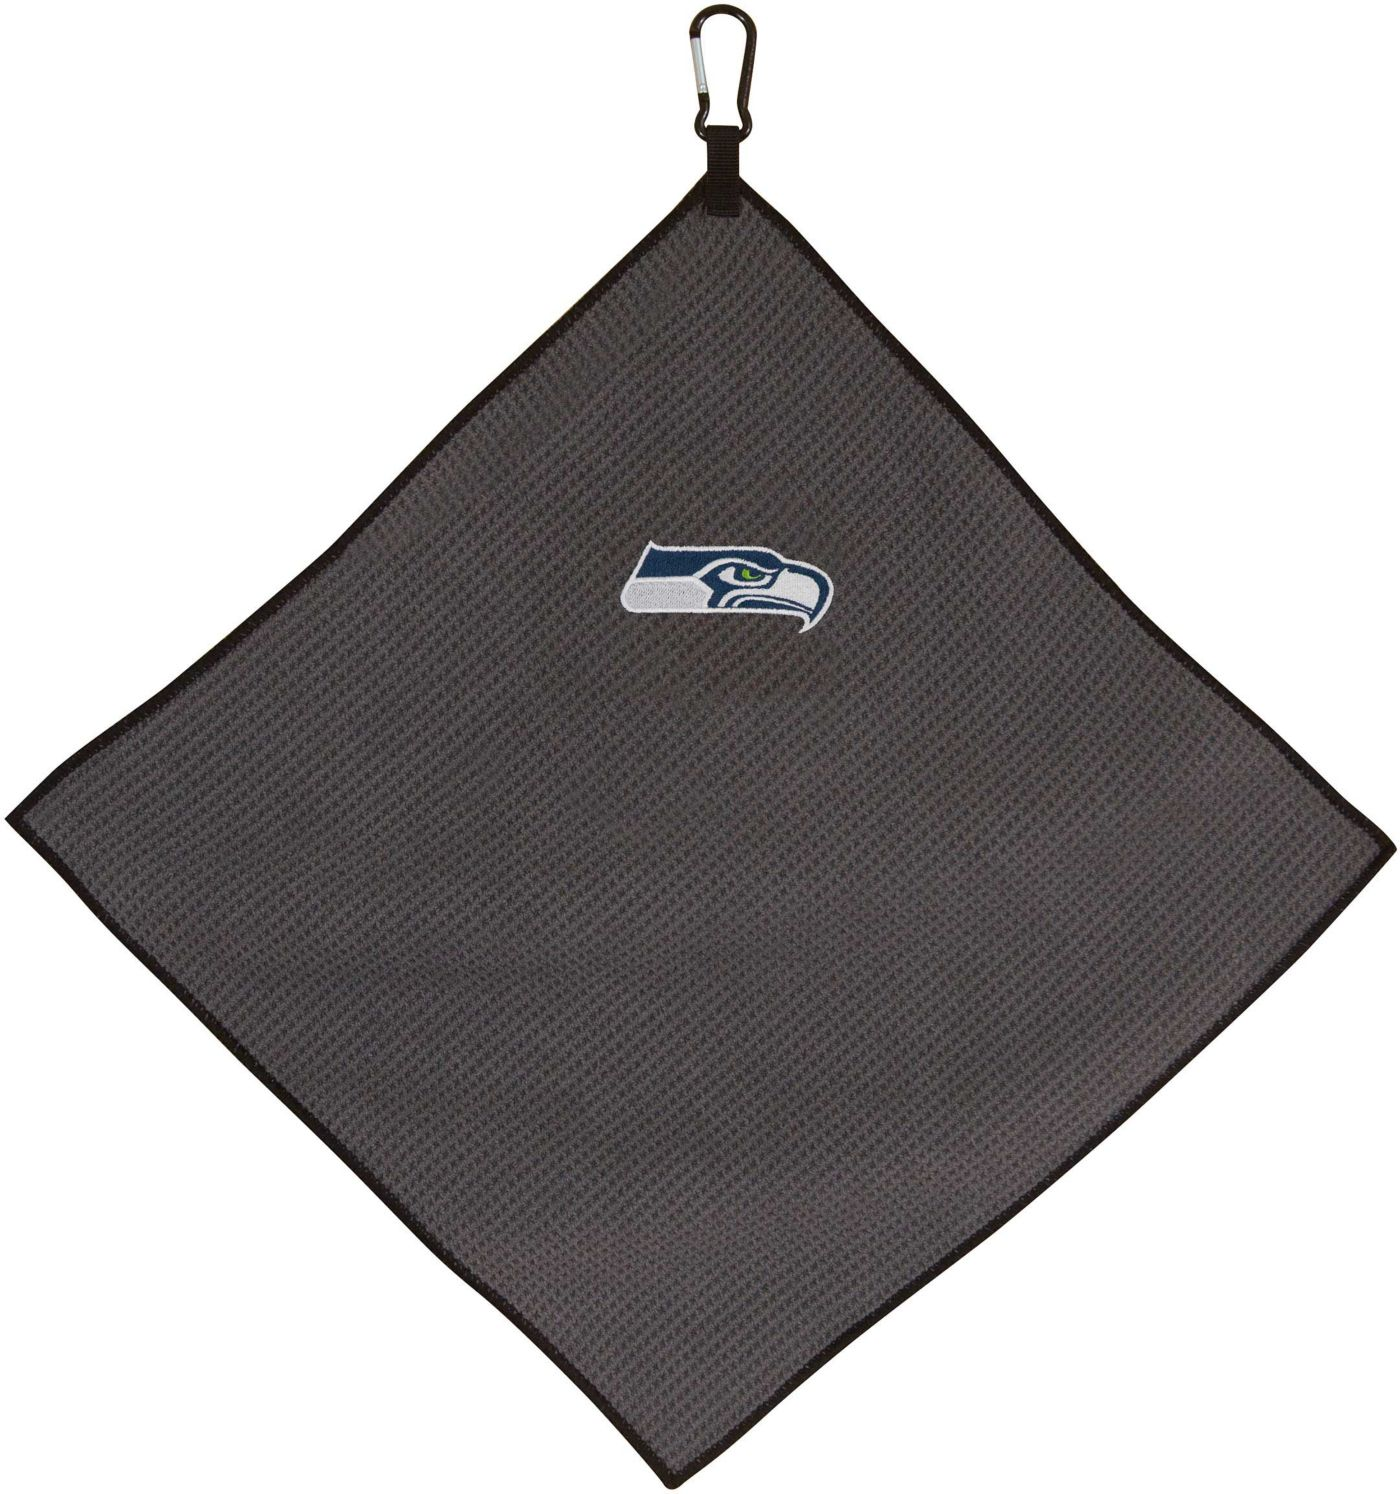 "Team Effort Seattle Seahawks 15"" x 15"" Microfiber Golf Towel"